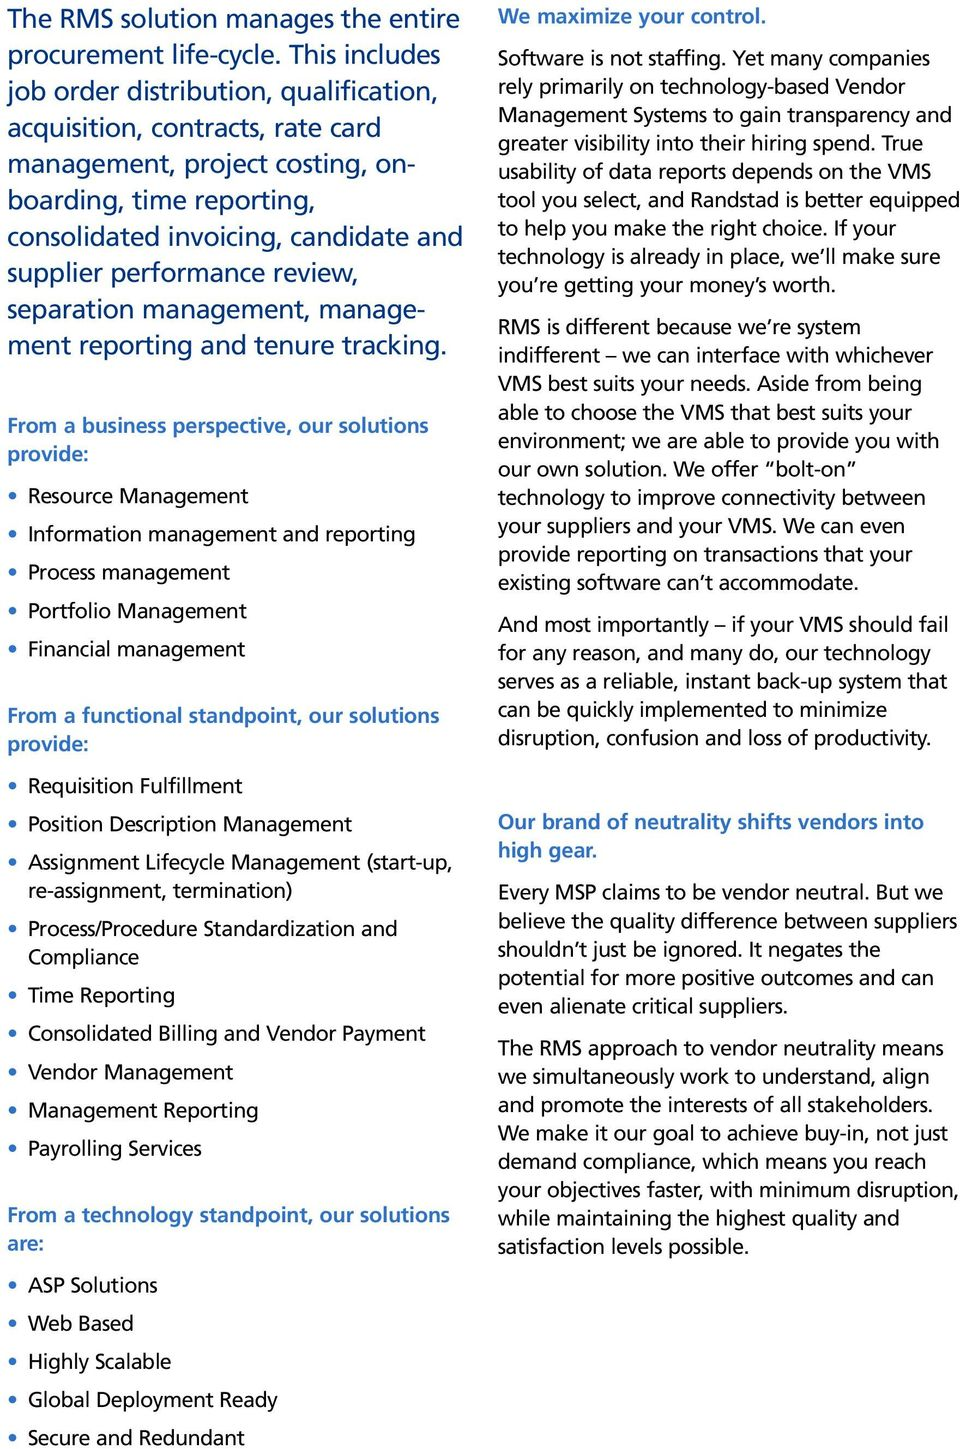 performance review, separation management, management reporting and tenure tracking.